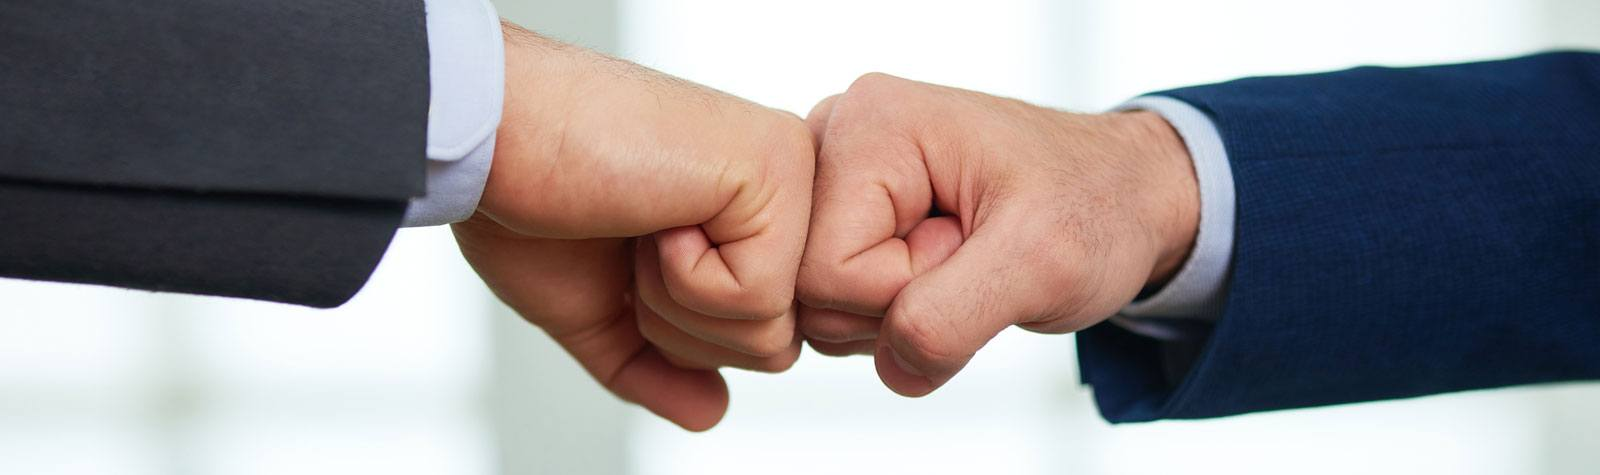 Close-up of hands fist bumping.